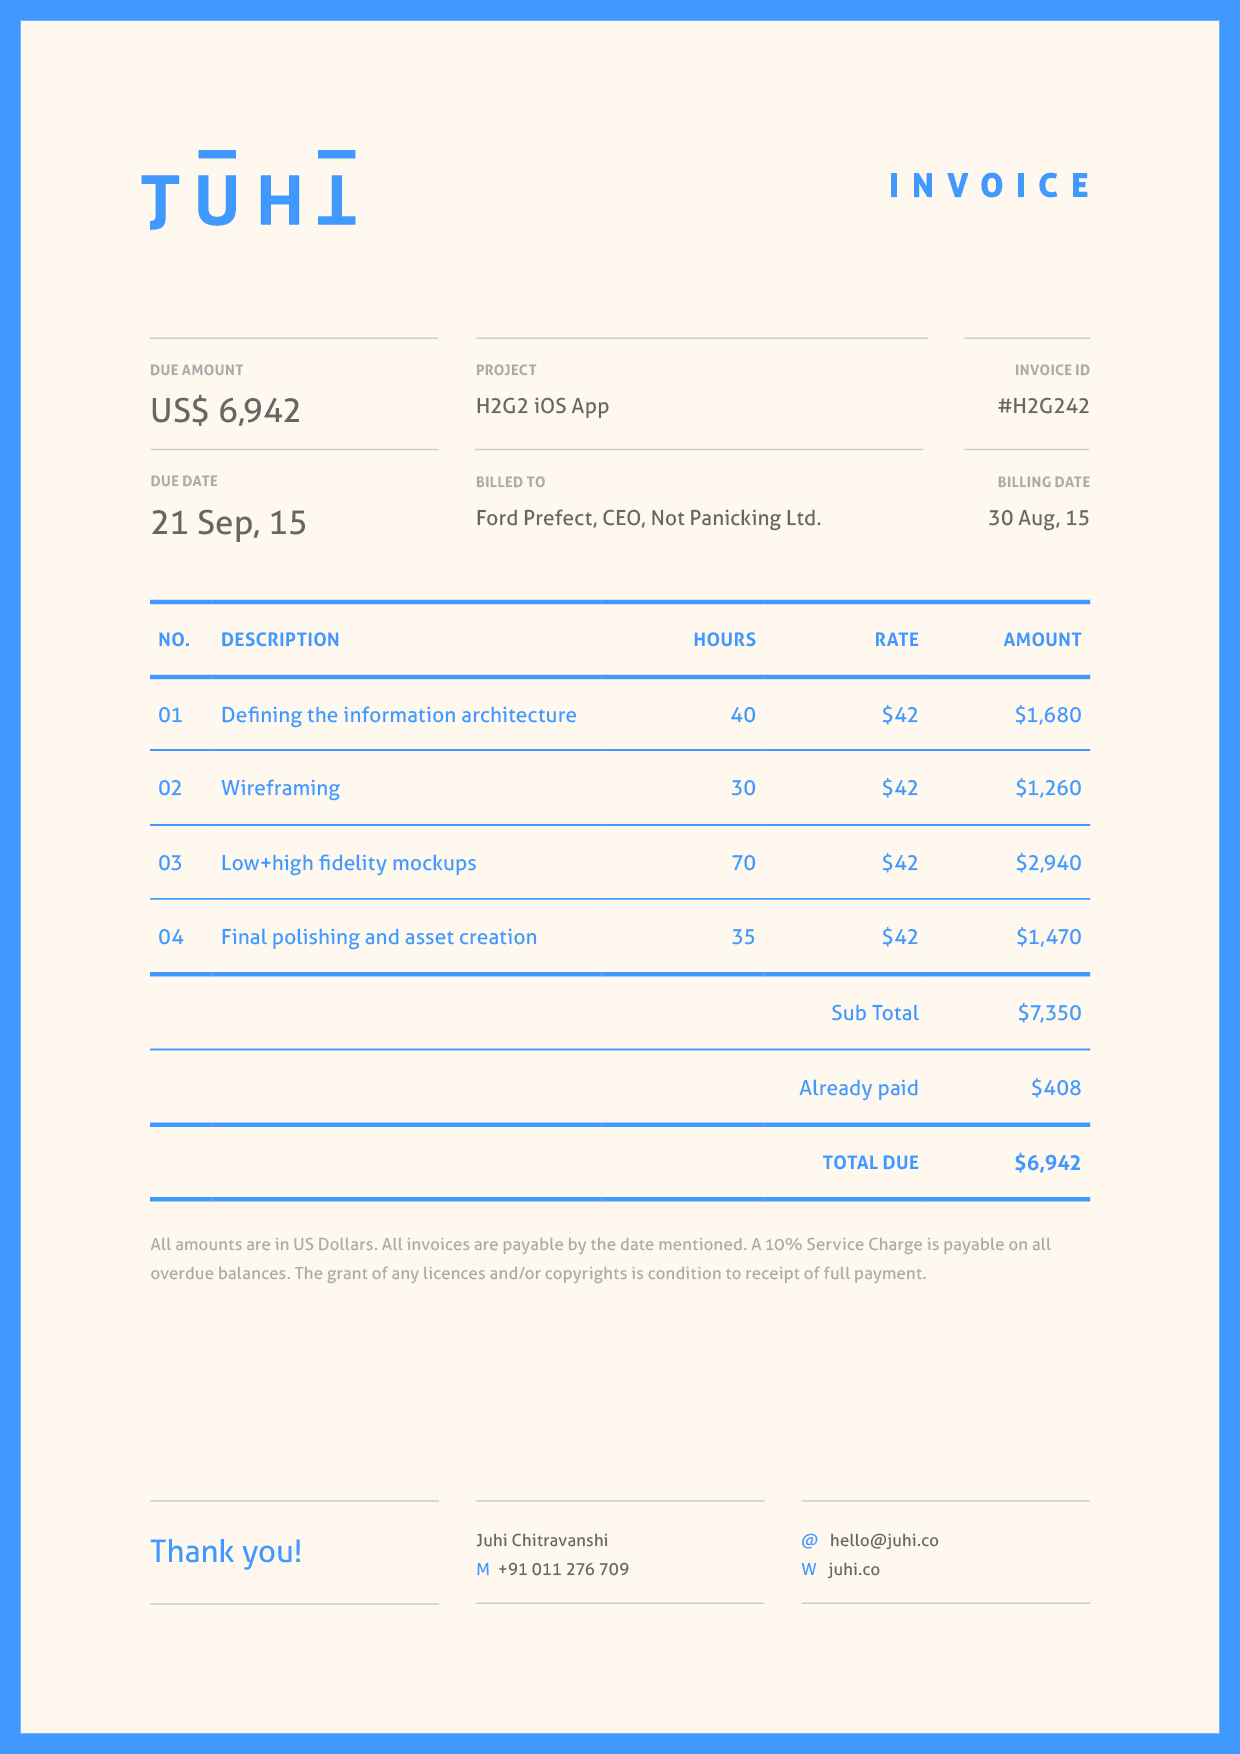 Usdgus  Fascinating Dont Hold Back On Your Invoice  Inspiring Designs  With Fascinating Invoice By Juhi Chitravanshi Follow With Appealing Express Invoice Review Also Invoice Printable In Addition Free Invoices To Print And Ariba Invoice As Well As Easy Invoicing Additionally Copy Of Invoice Template From Inspirationfeedcom With Usdgus  Fascinating Dont Hold Back On Your Invoice  Inspiring Designs  With Appealing Invoice By Juhi Chitravanshi Follow And Fascinating Express Invoice Review Also Invoice Printable In Addition Free Invoices To Print From Inspirationfeedcom